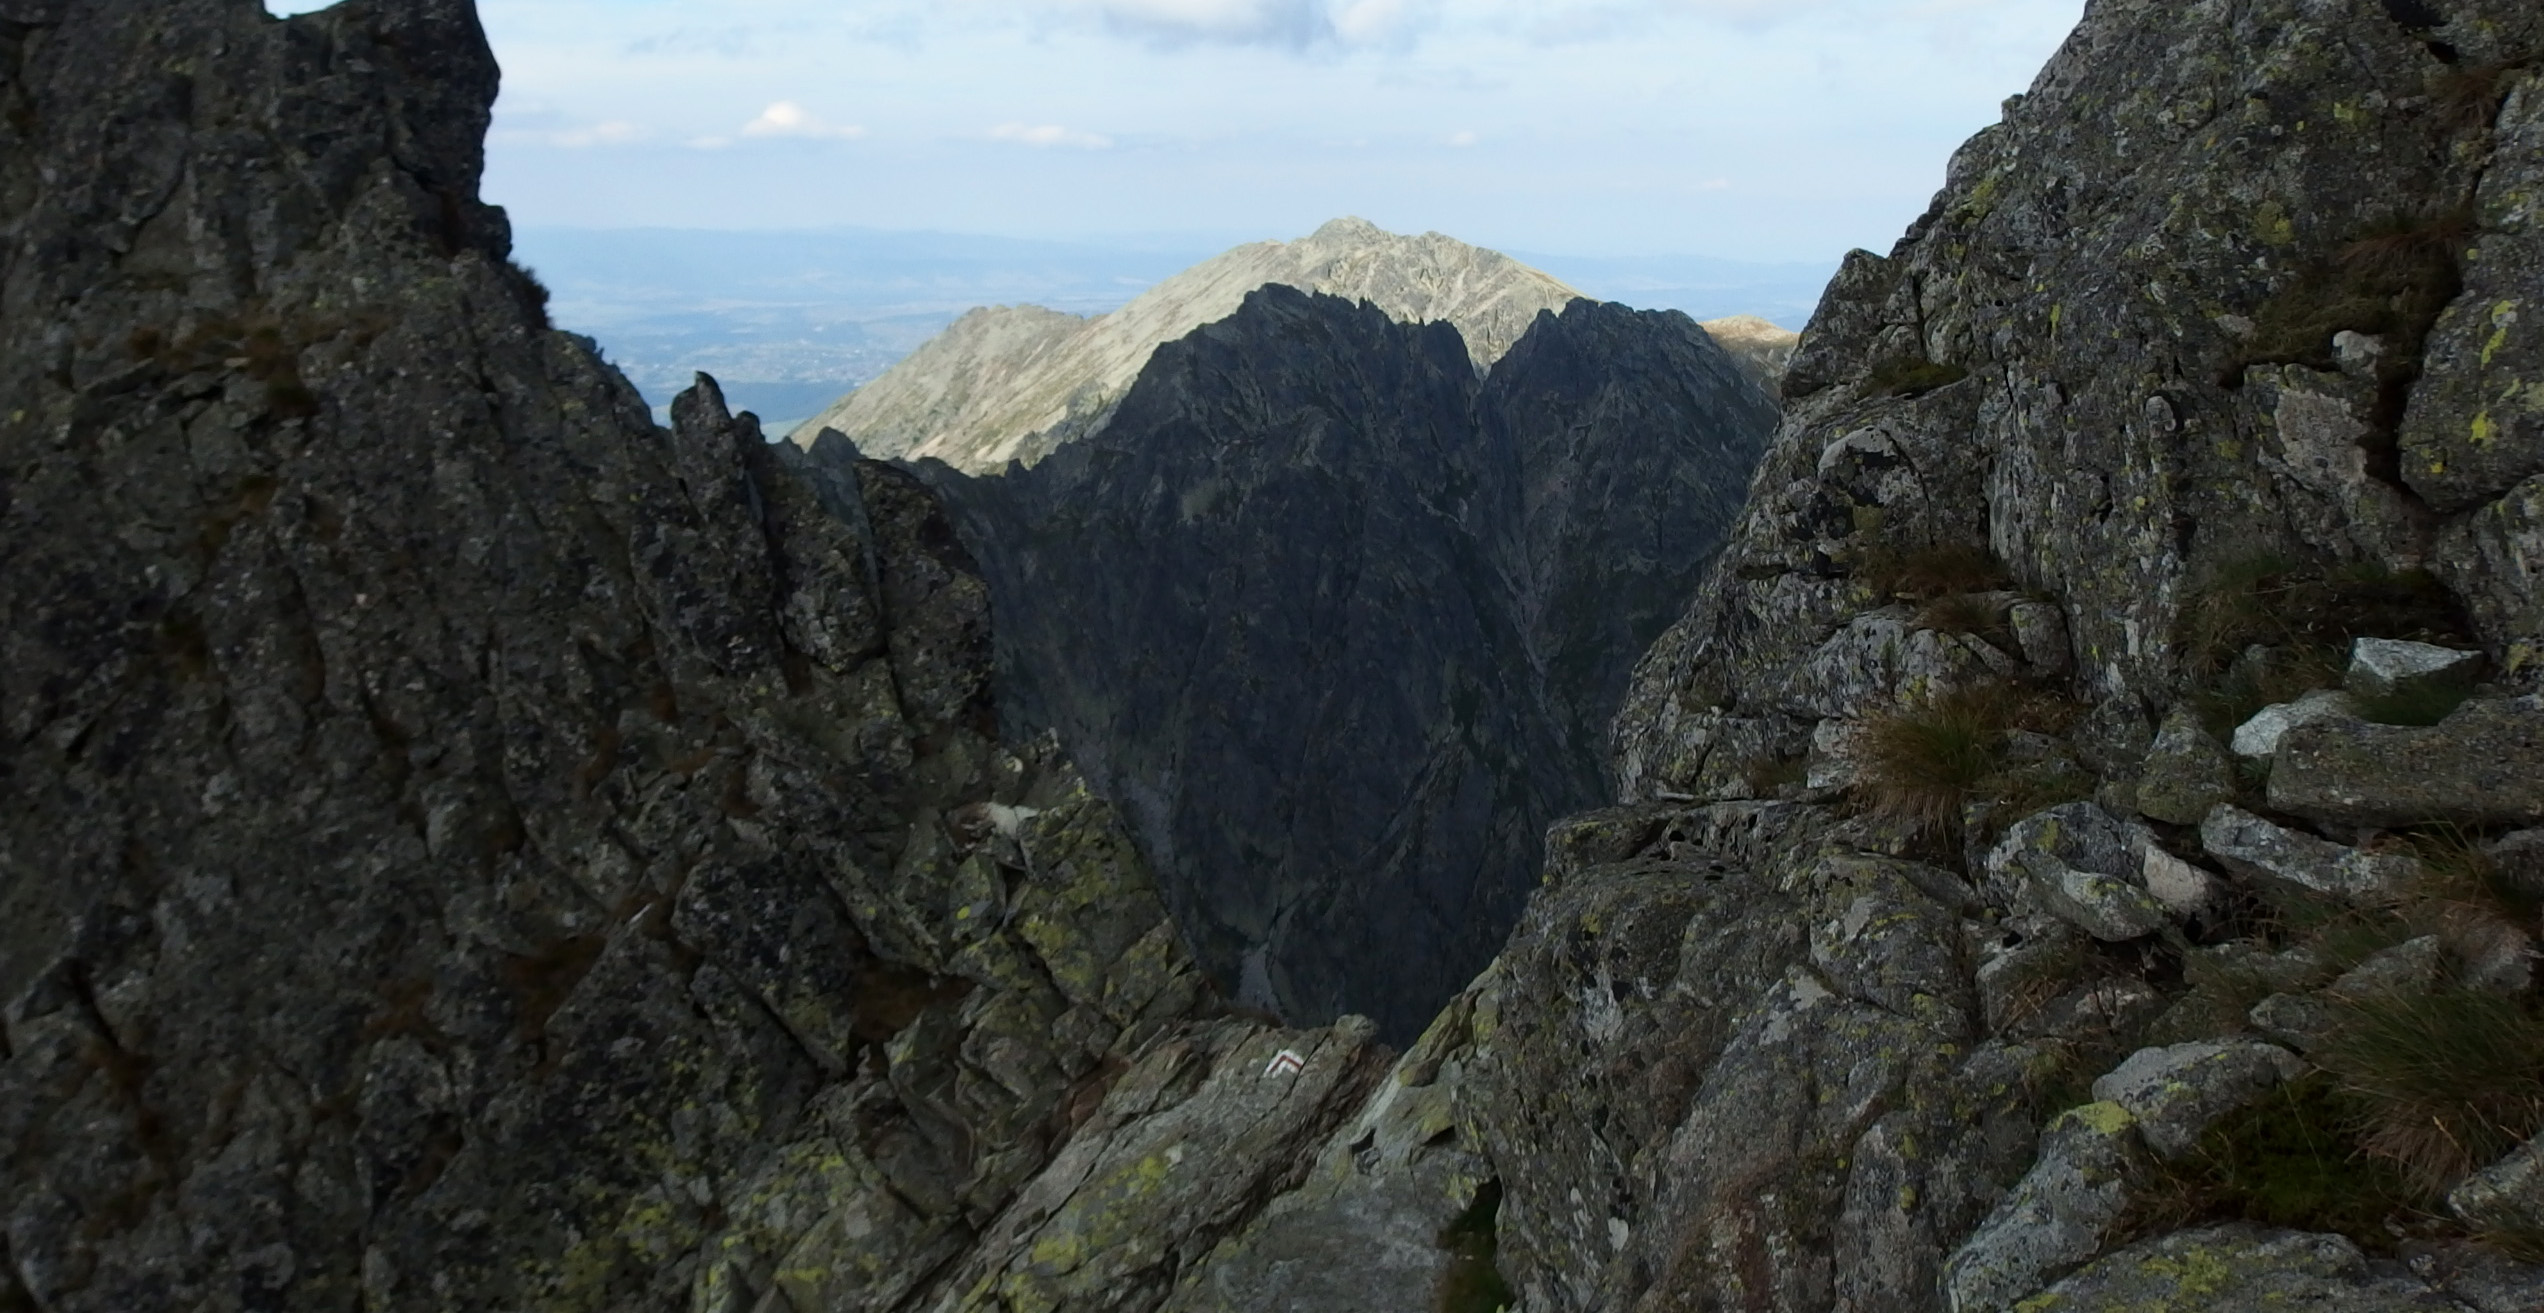 Orla Perć – the most difficult trail in Tatras